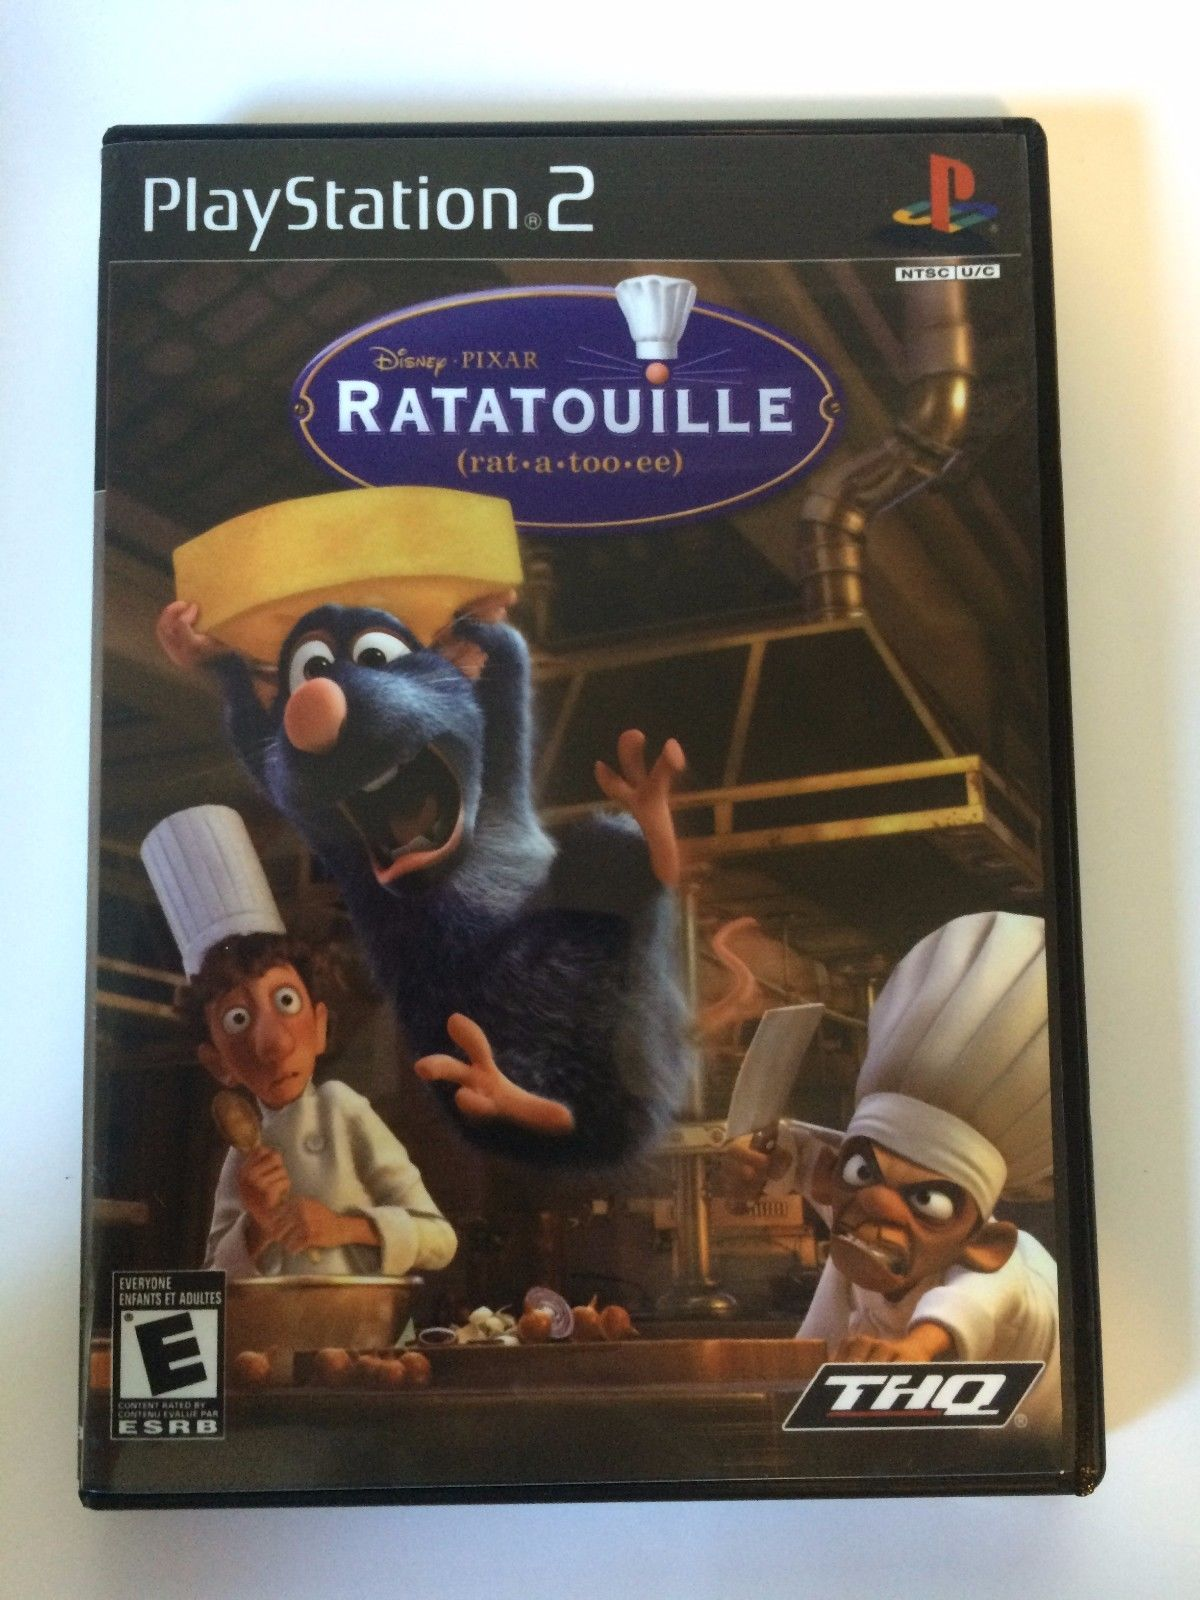 Ratatouille - Playstation 2 - Replacement Case - No Game